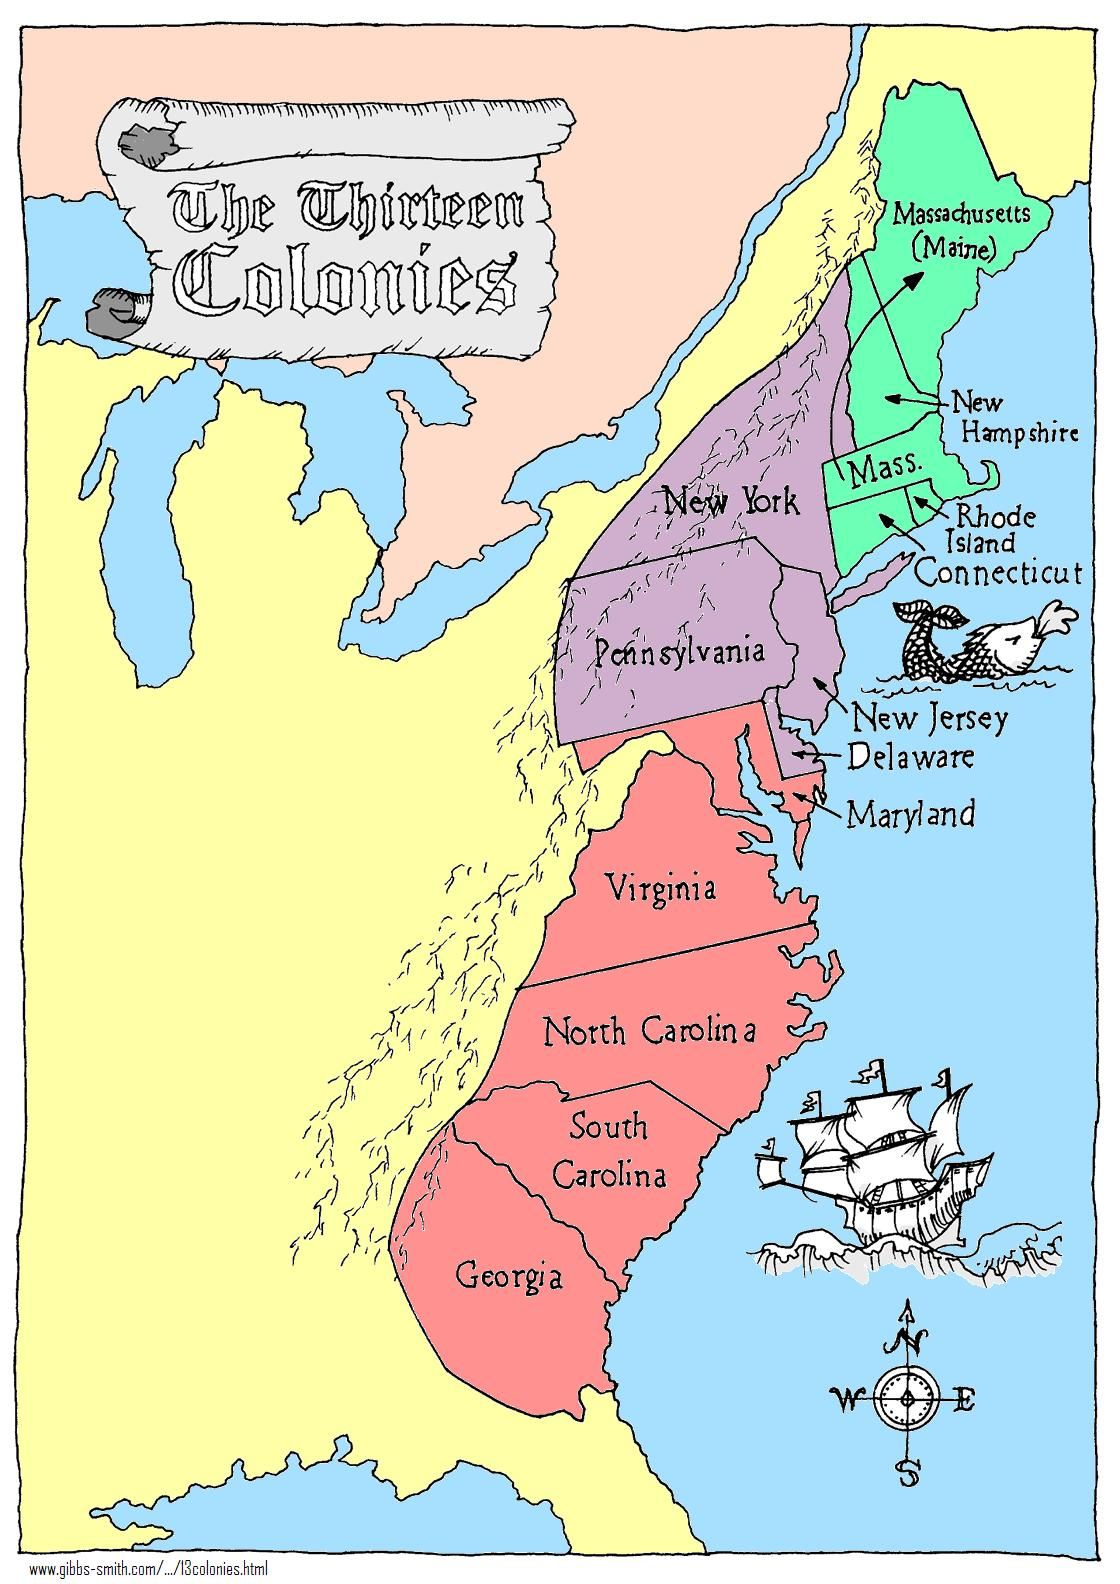 Thirteen Colonies Map thirteen colonies map | 3rd quarter Student Teaching | Pinterest  Thirteen Colonies Map